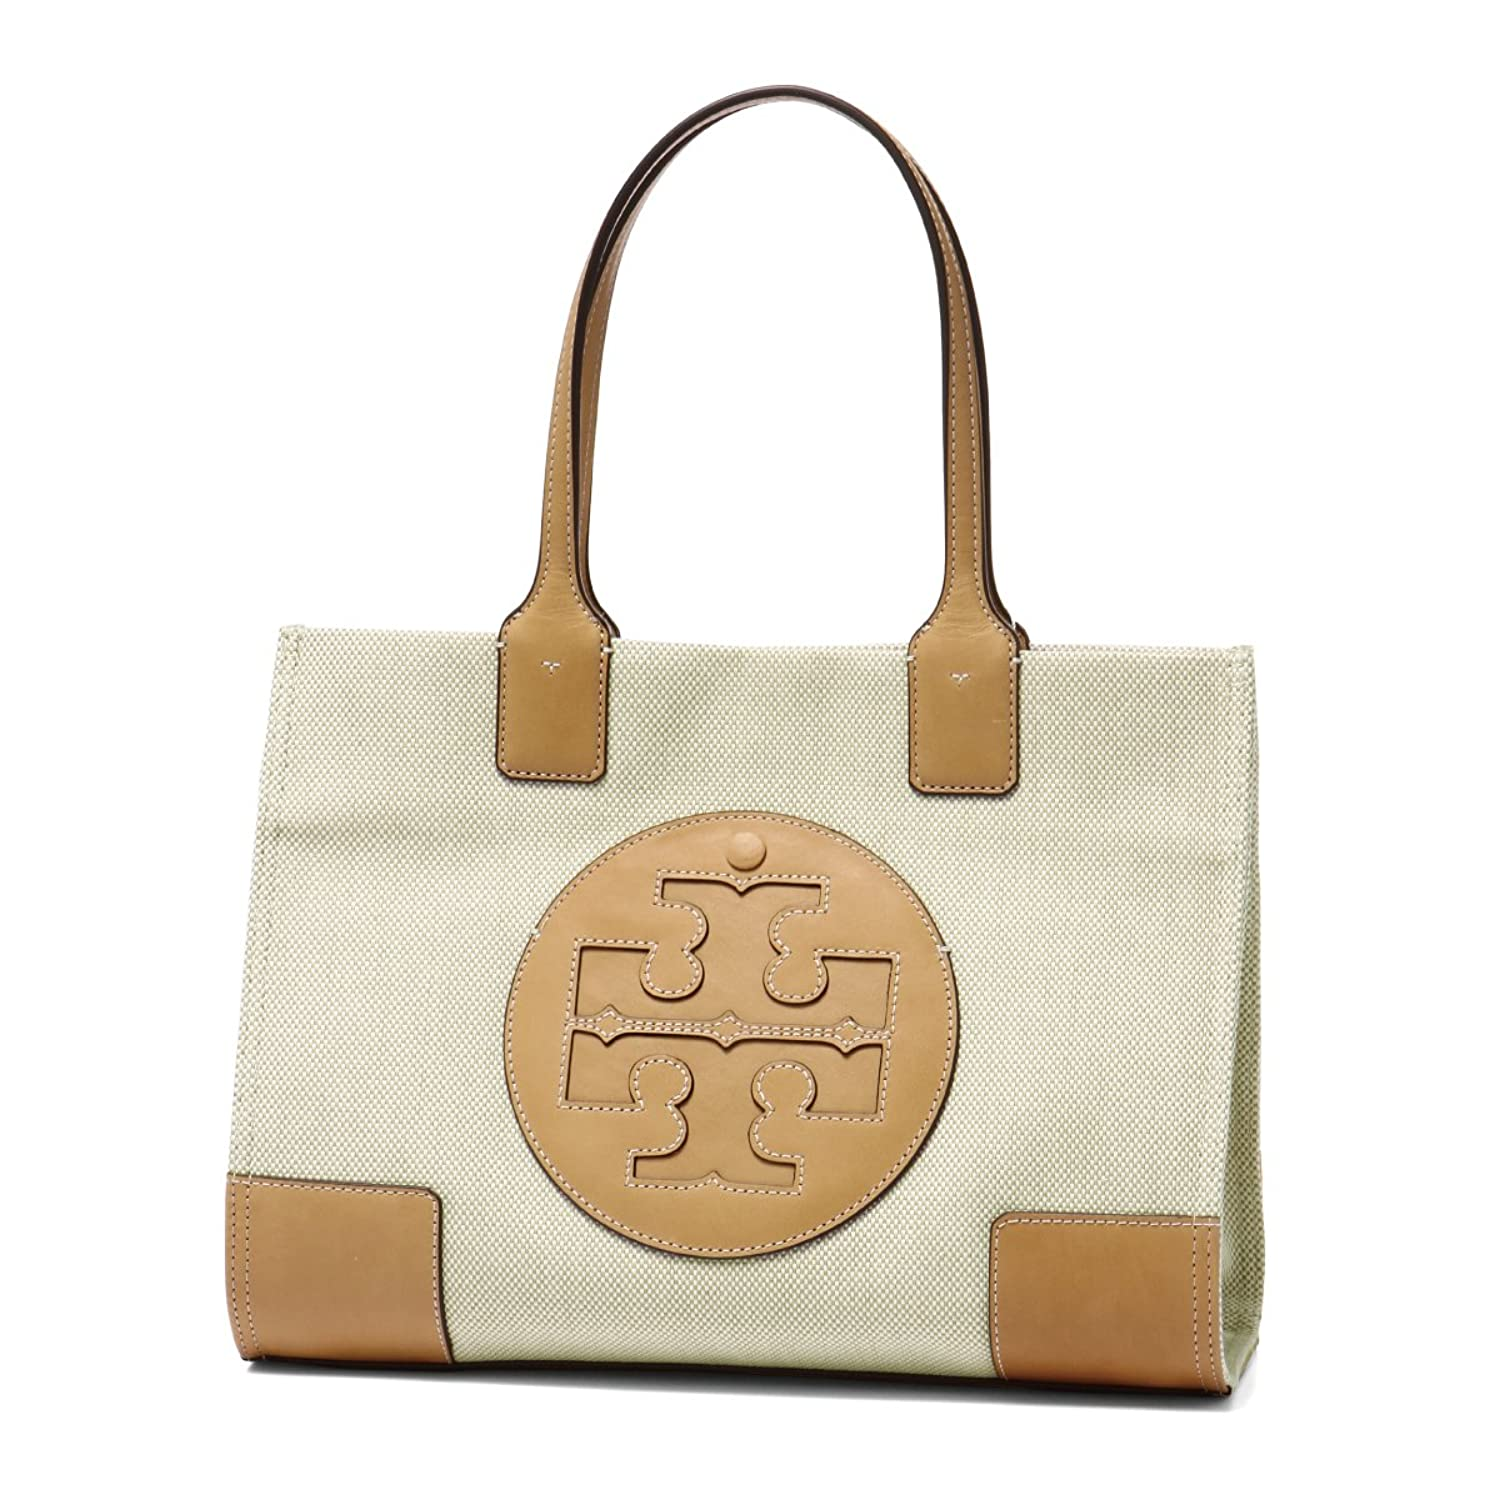 TORY BURCH TOB18S MINI ELLA CANVAS TOTE 45208/285NA-IV/81 ベージュ/ホワイト B07BMKXNQ7